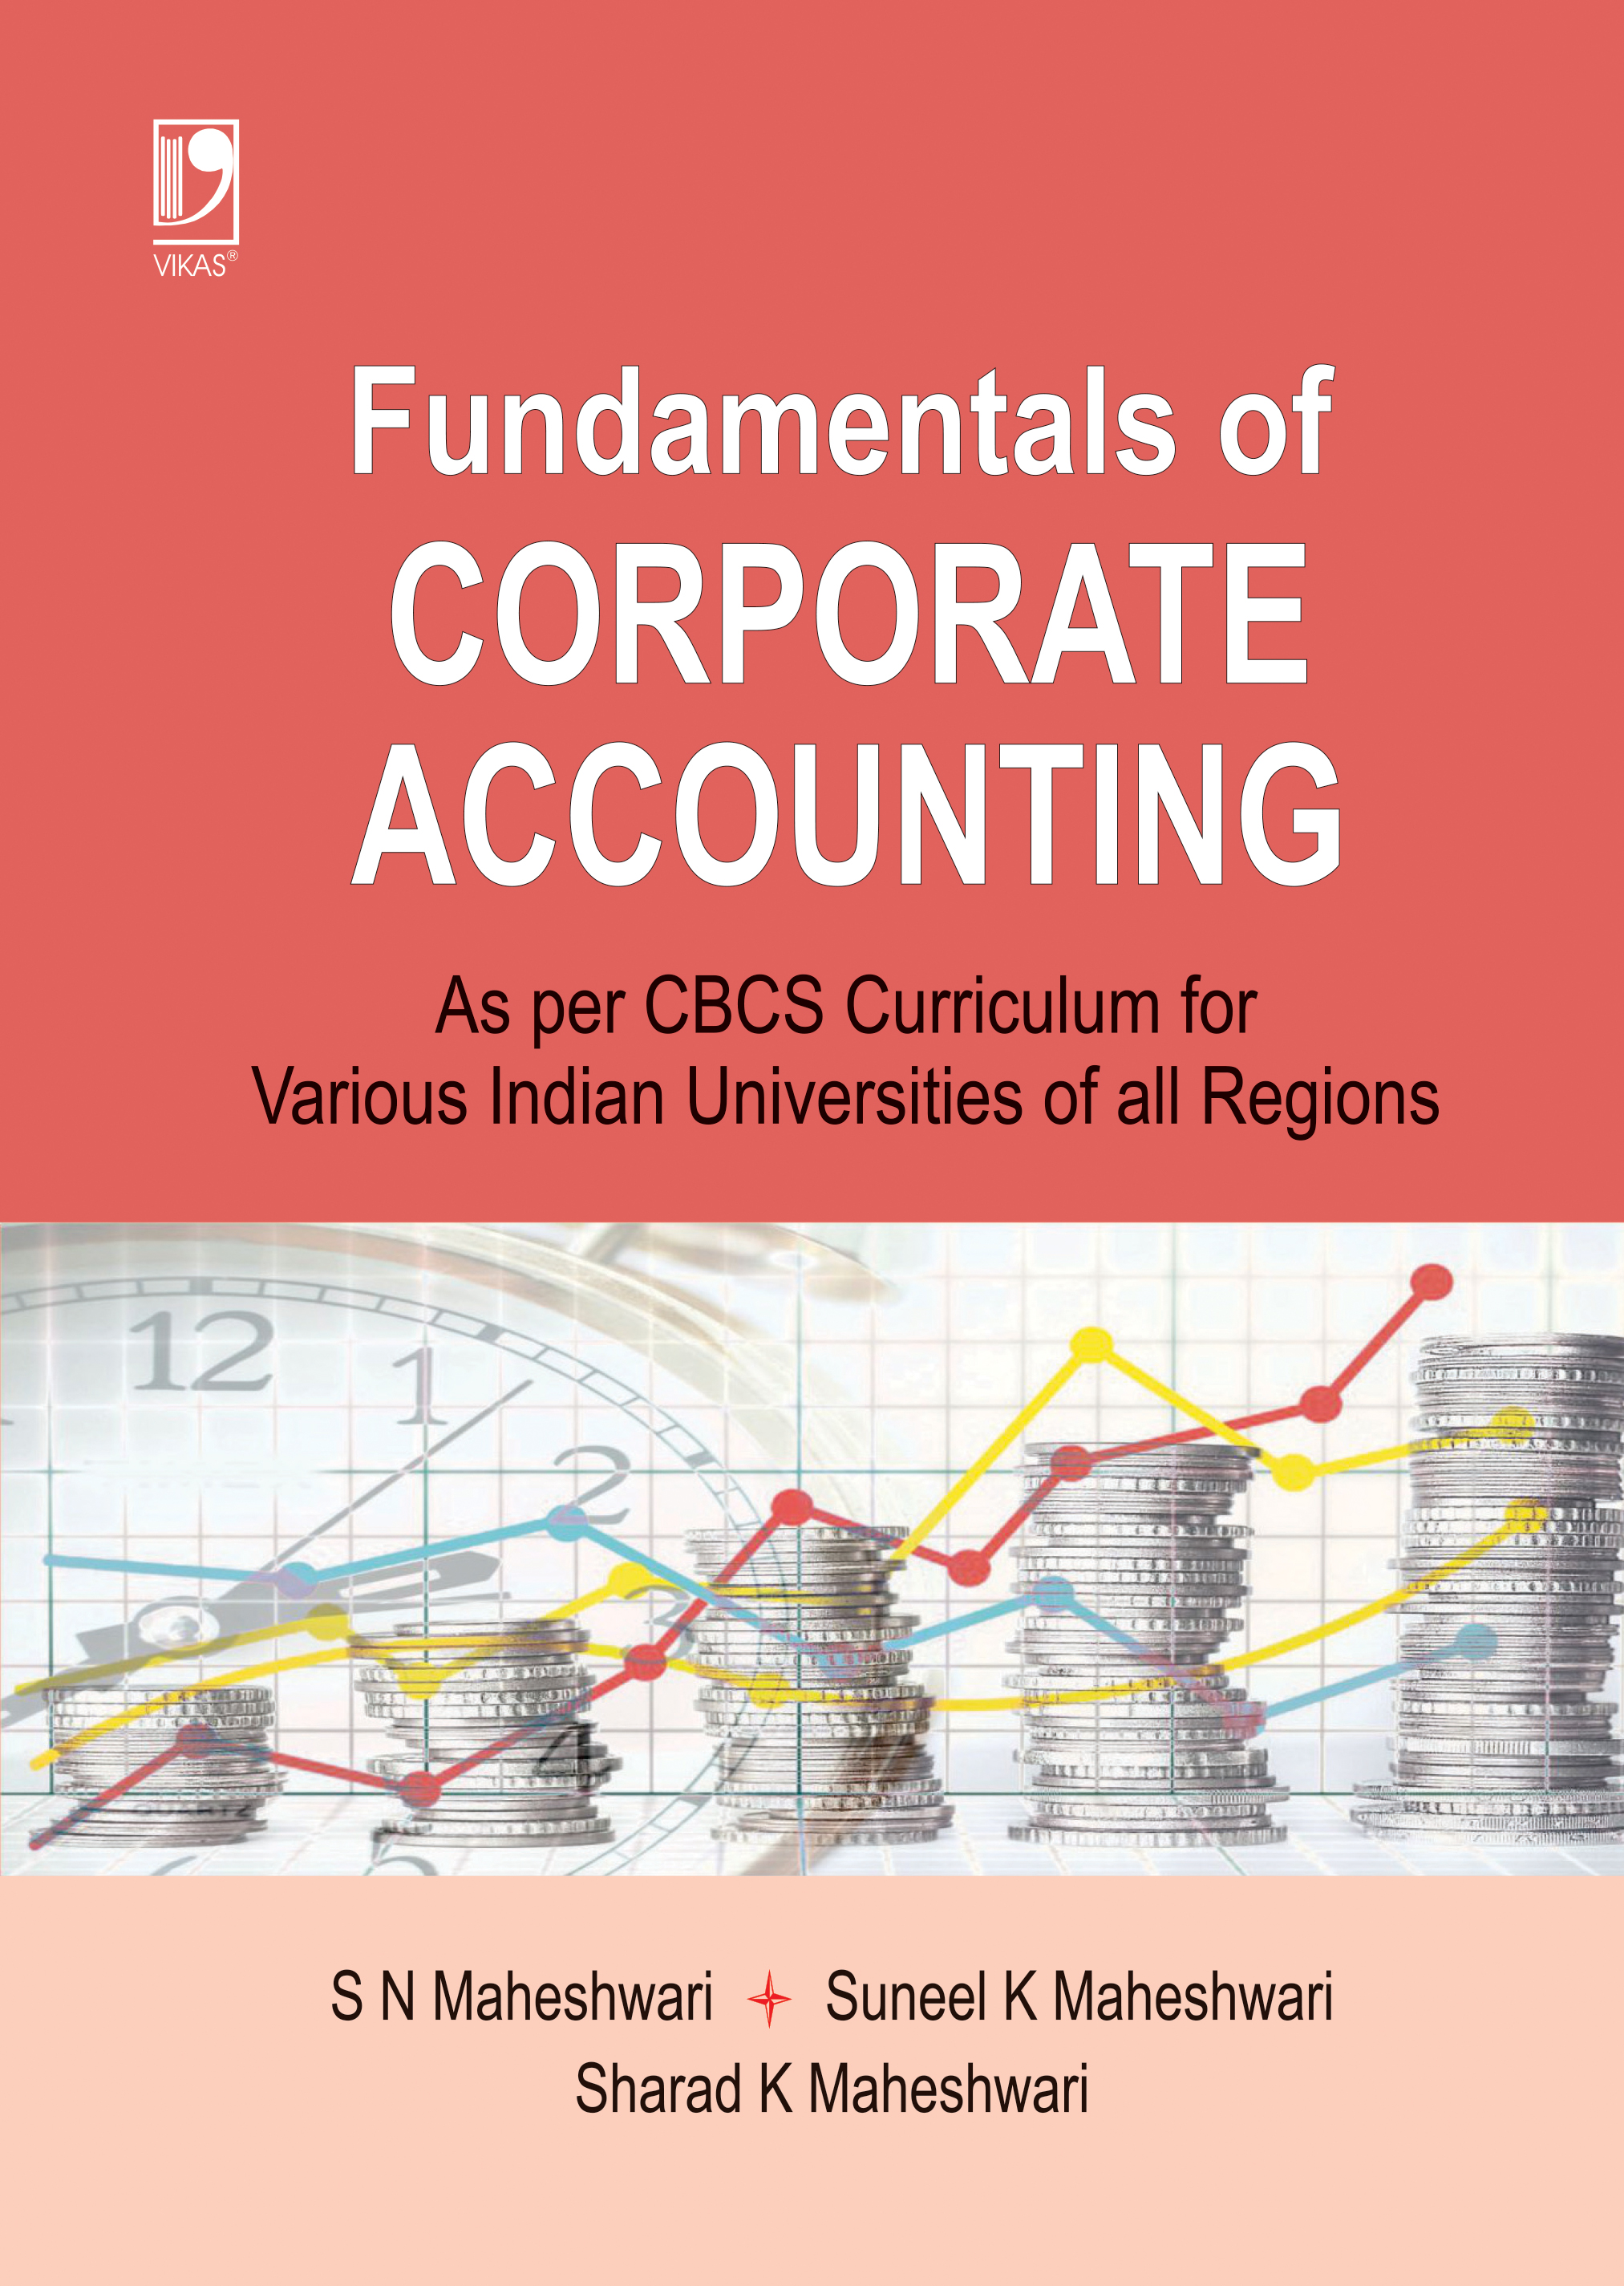 Fundamentals of Corporate Accounting (As per CBCS)